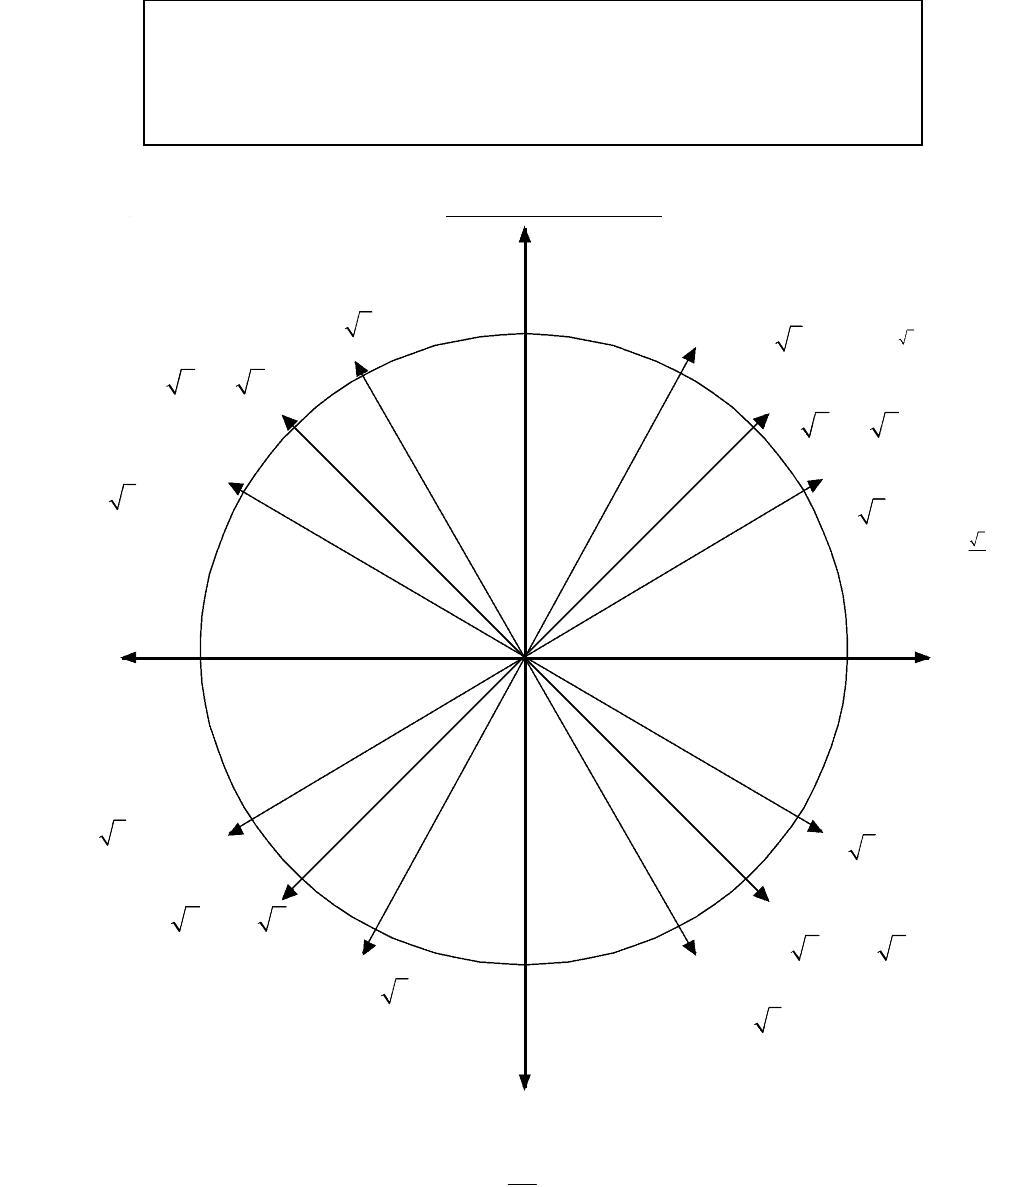 5 free unit circle chart templates - word - excel